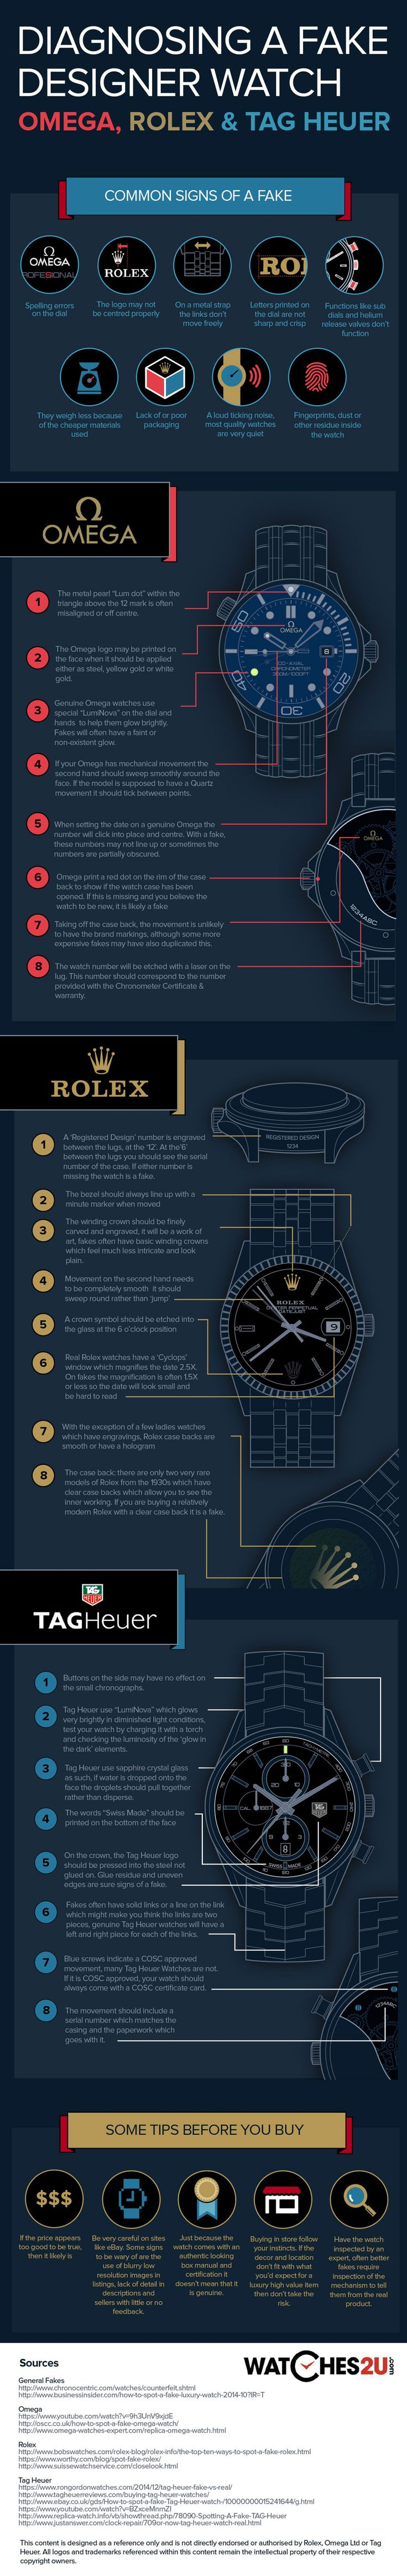 Some tips before you buy Omega, Rolex, or TagHeuer